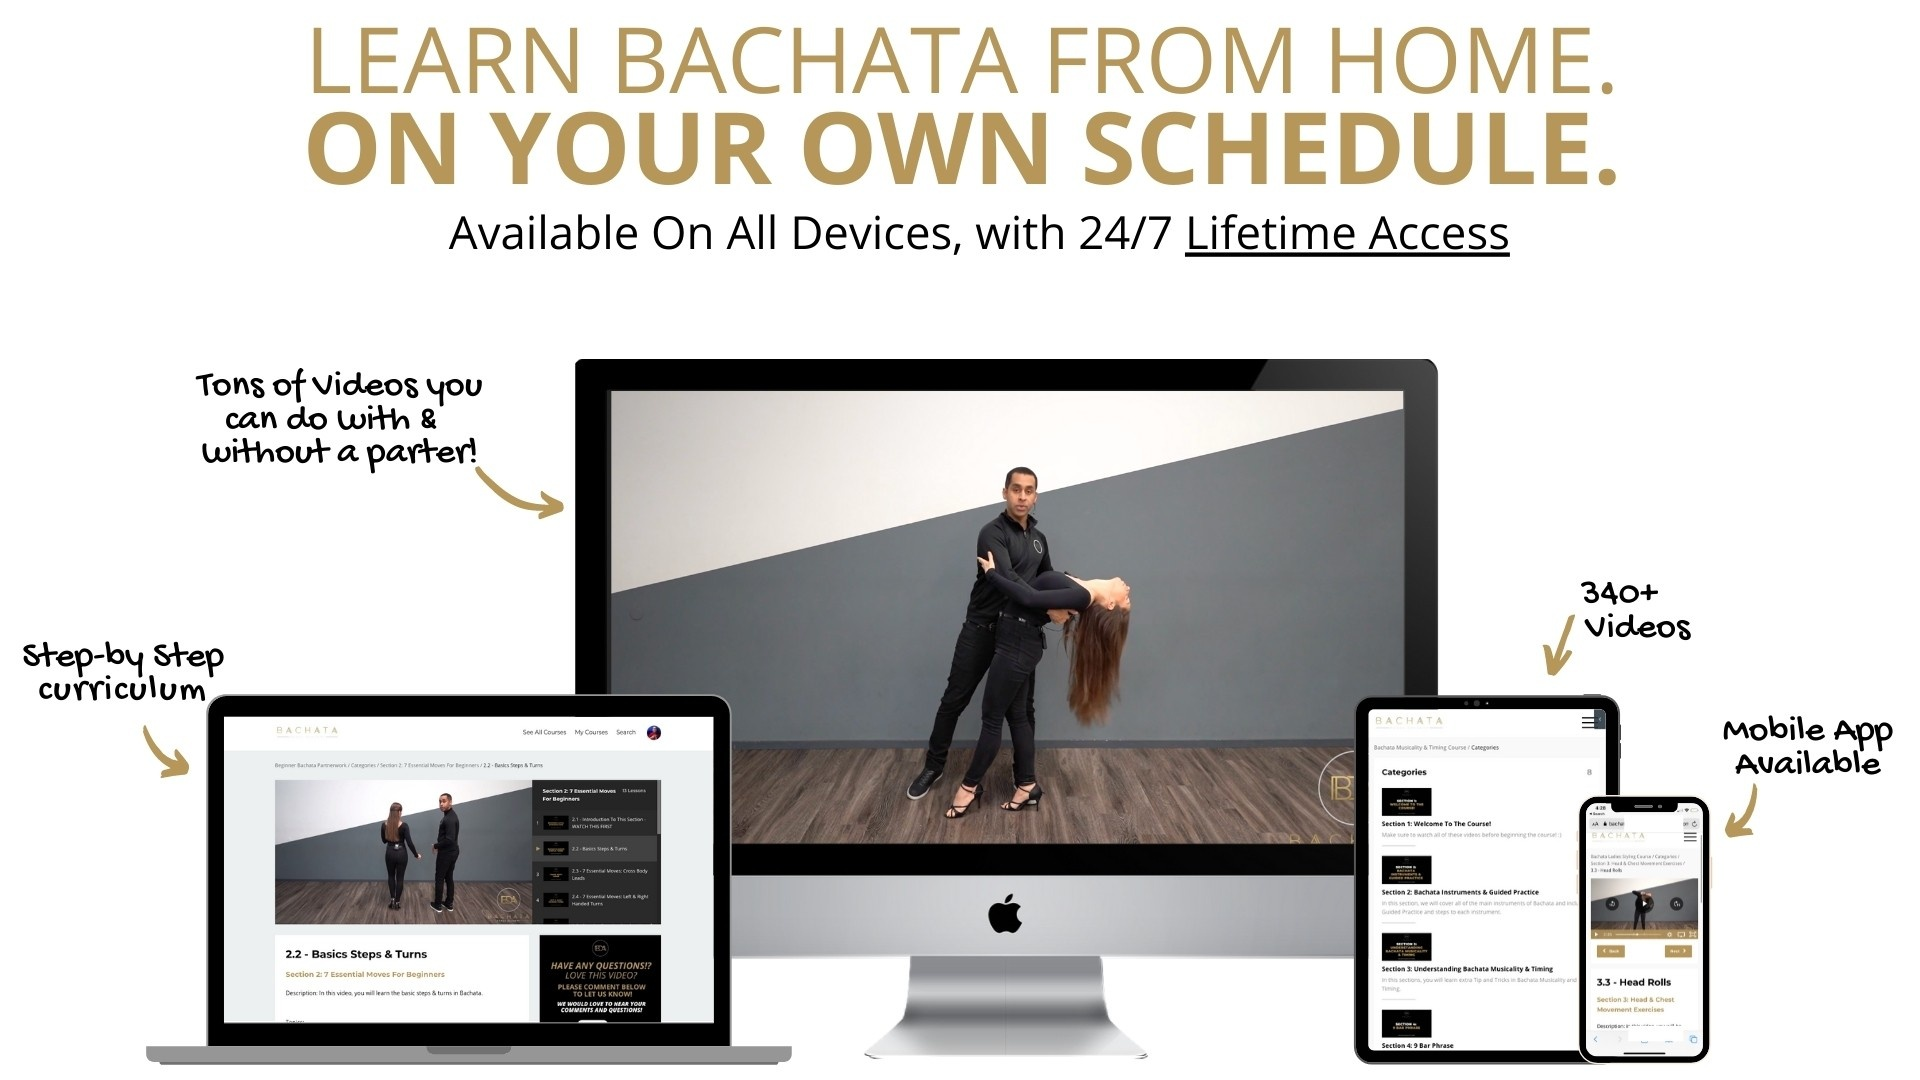 Bachata Courses Available On mobile app